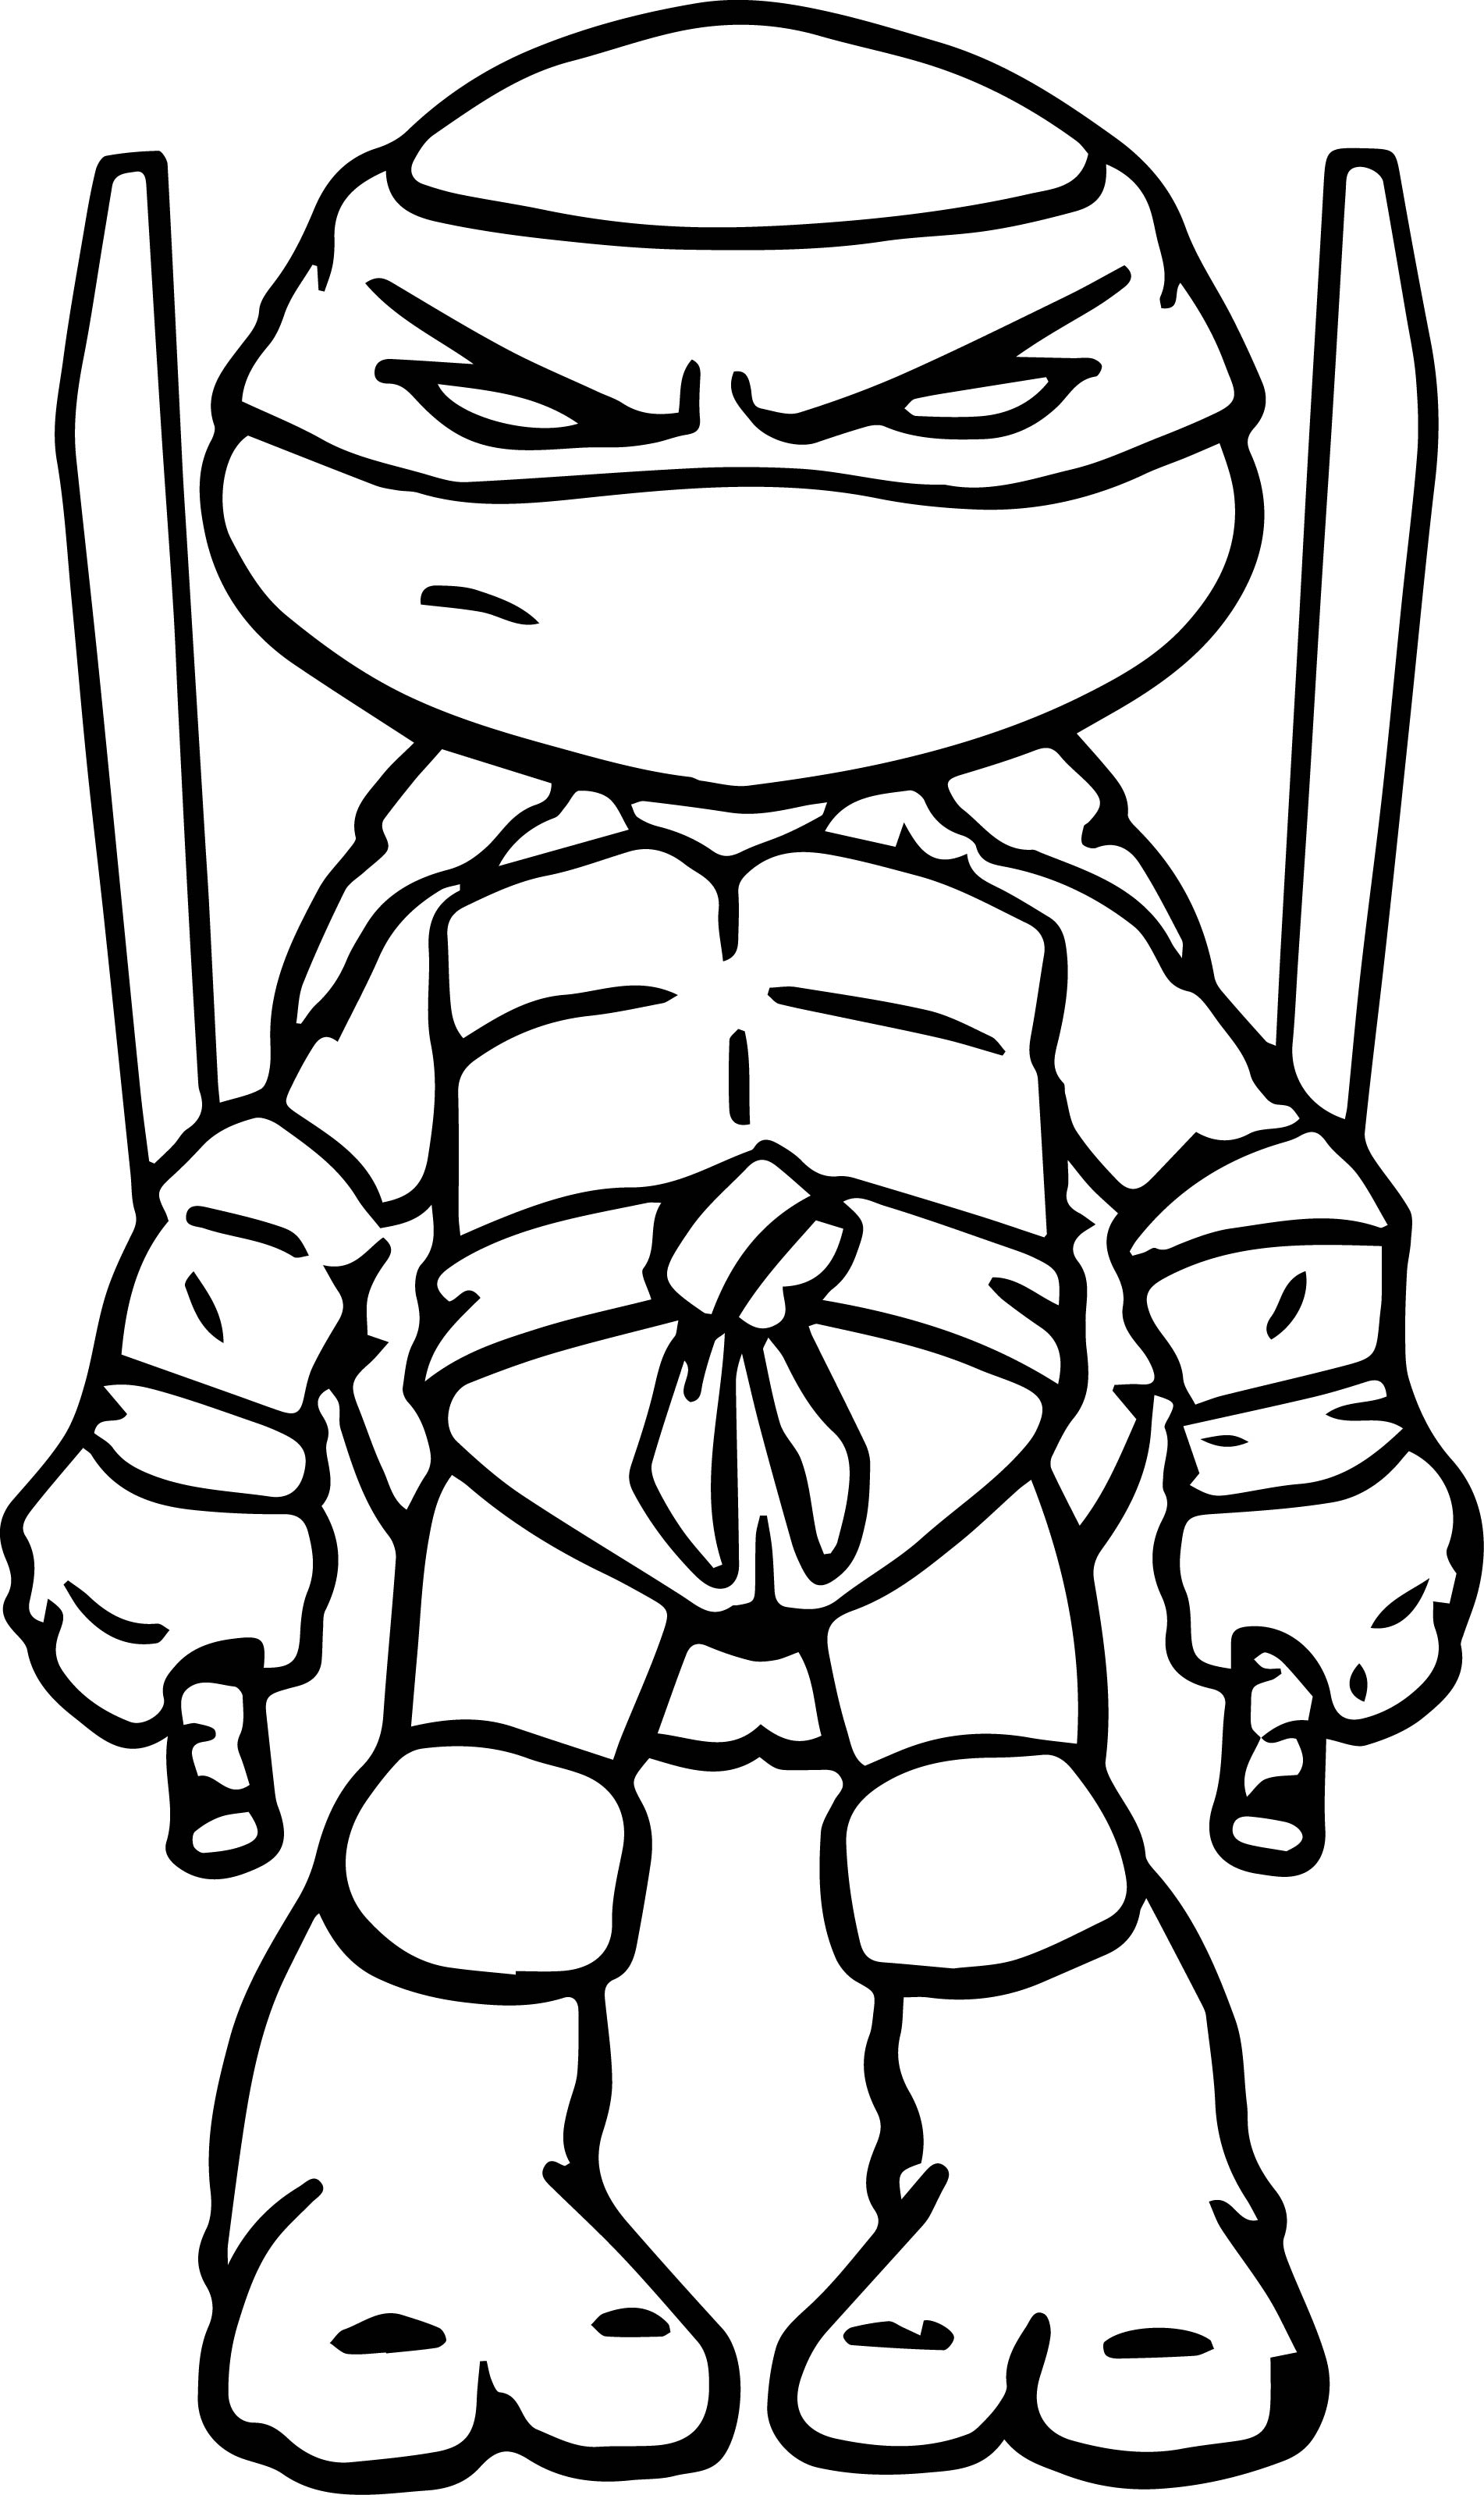 Ninja Coloring Pages Printable at GetDrawings.com | Free for ...